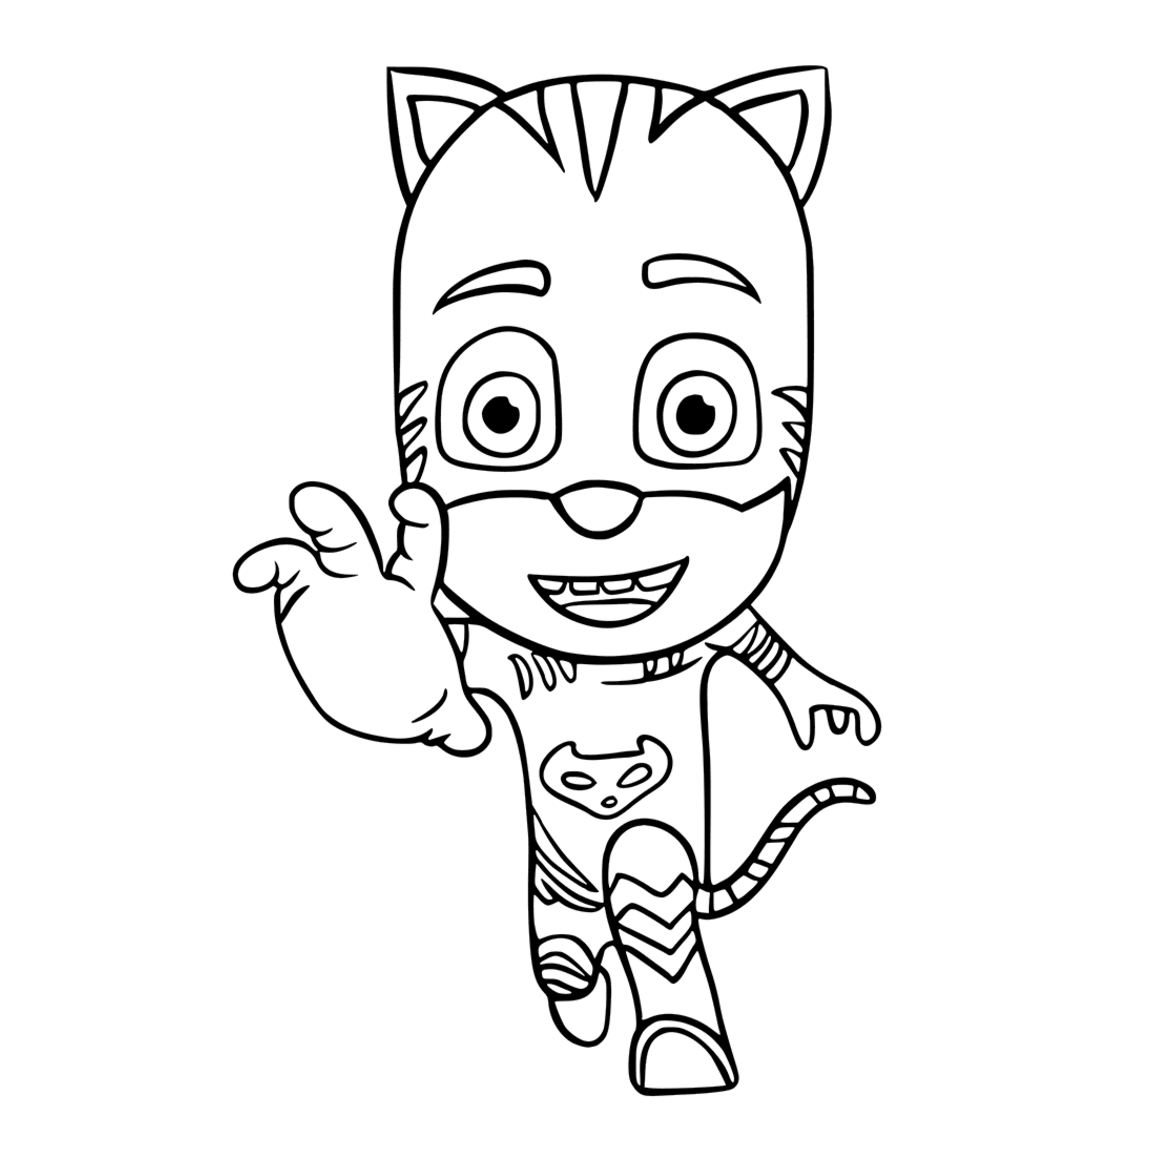 Pj masks coloring pages best coloring pages for kids for Photo to coloring page